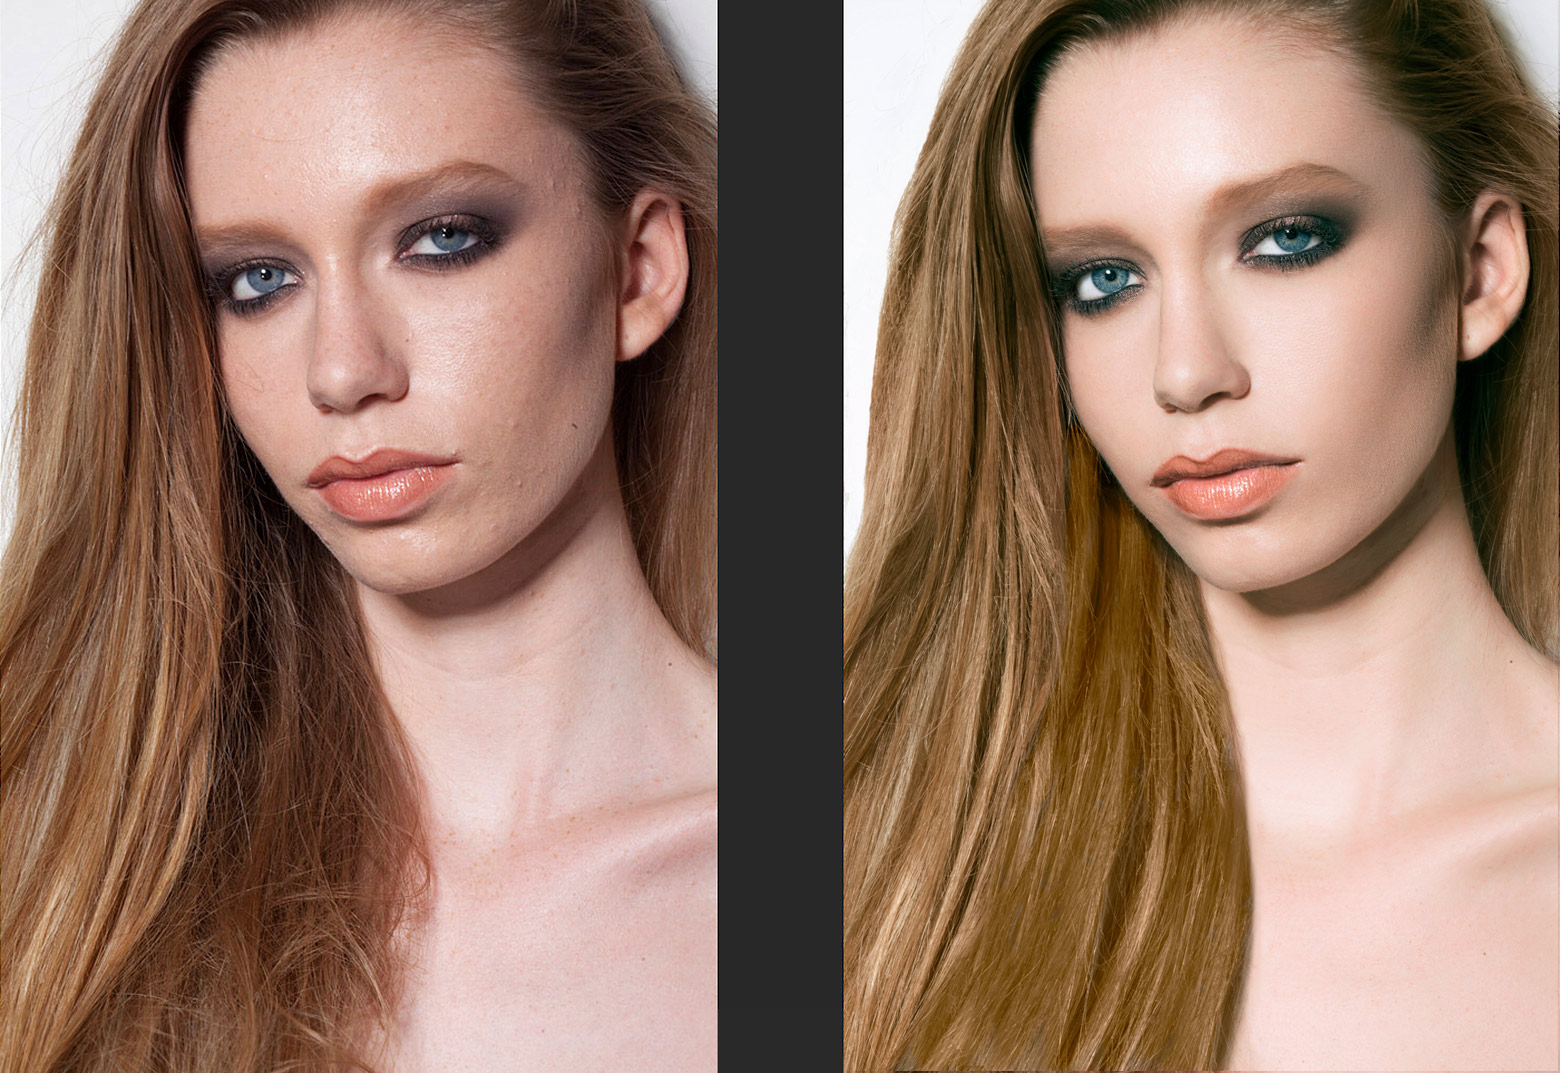 Retouch before & after